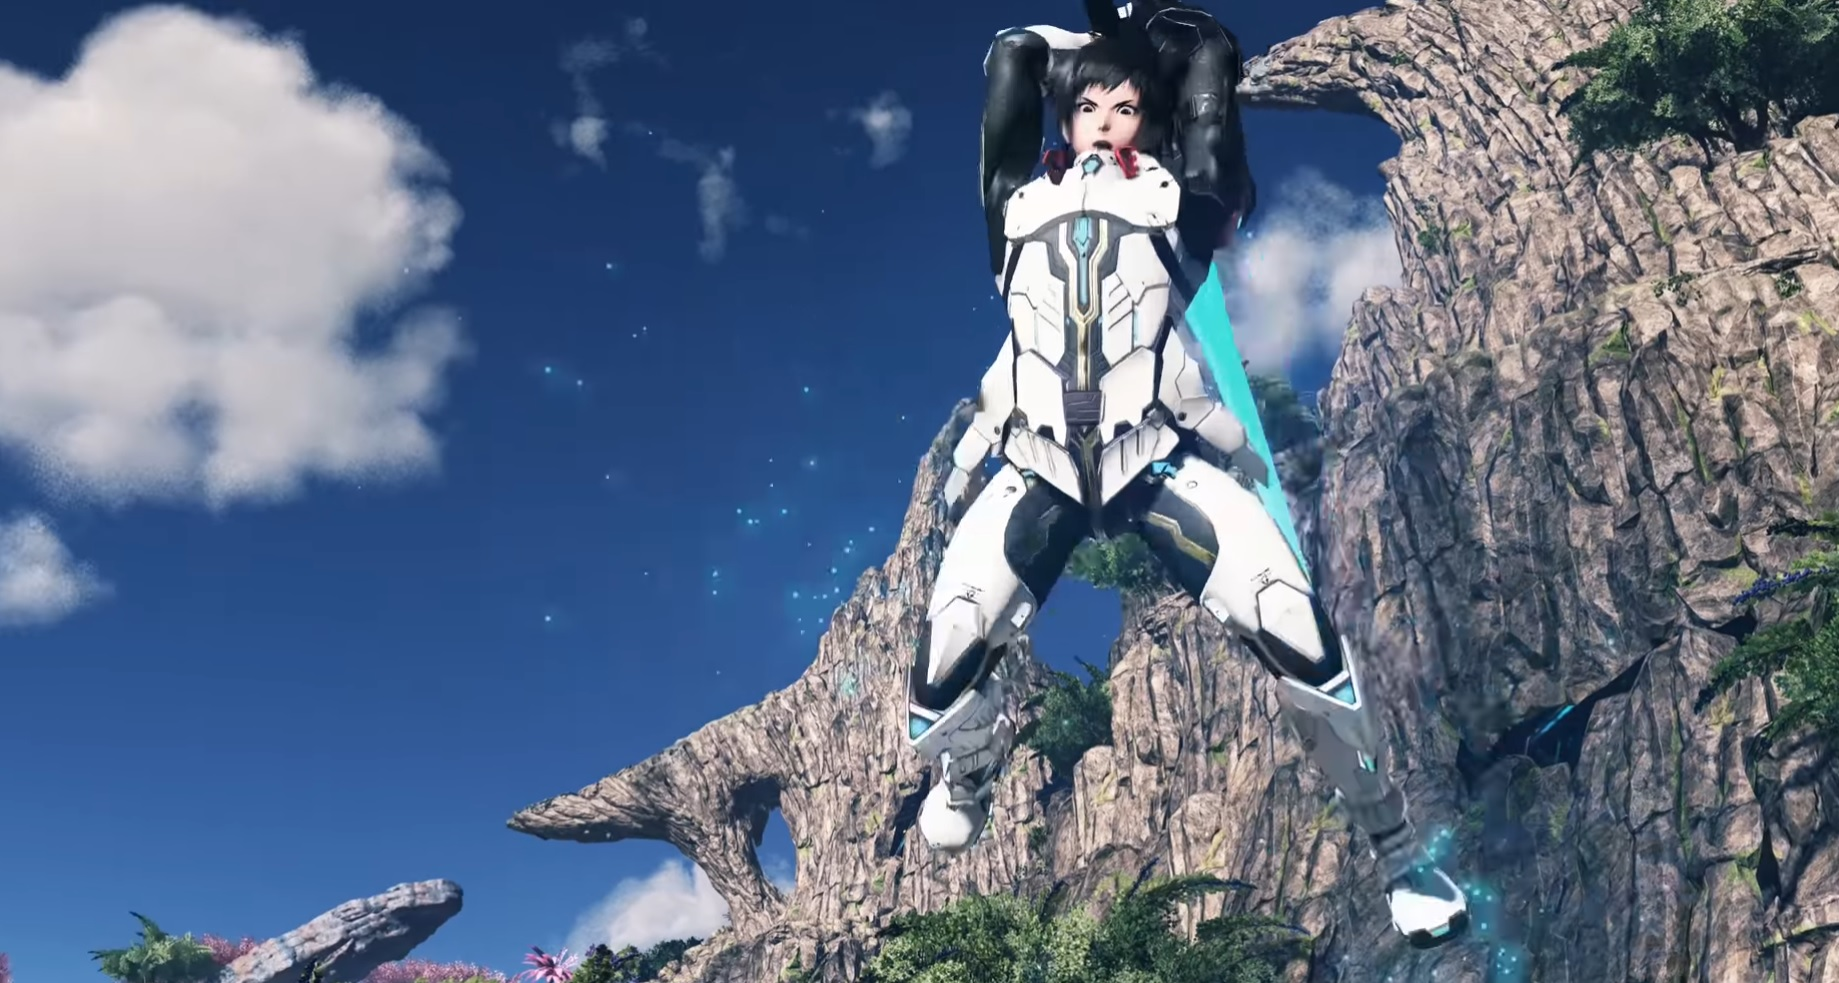 Phantasy Star Online 2: New Genesis will share a login screen with PSO 2 screenshot